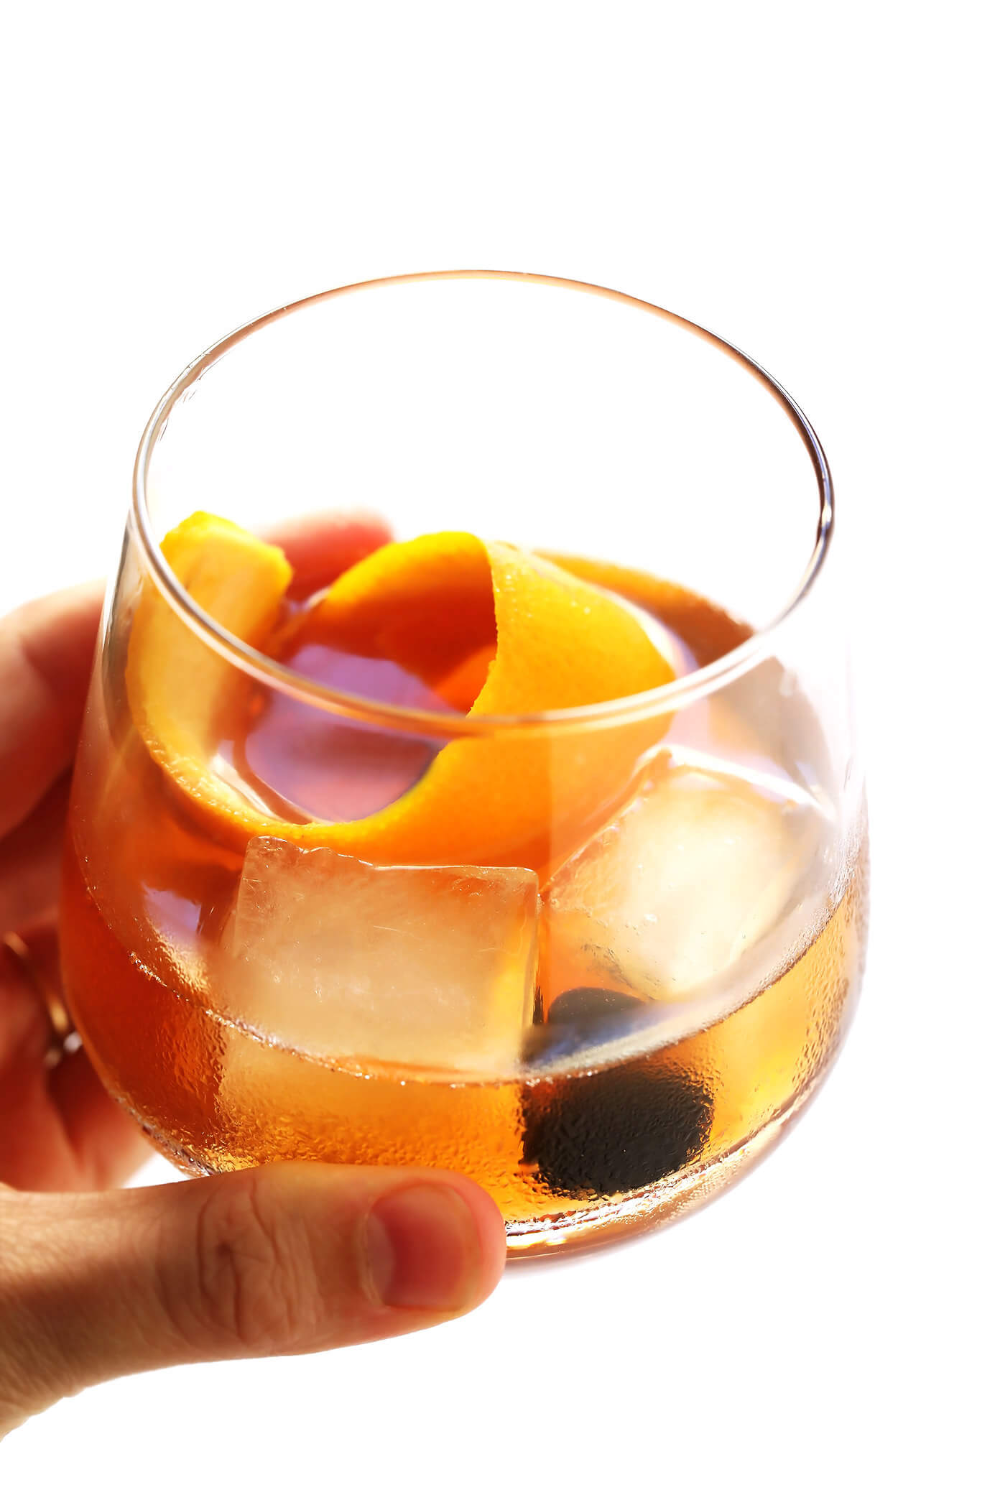 Maple Old Fashioned Cocktail Recipe In 2020 Old Fashion Drink